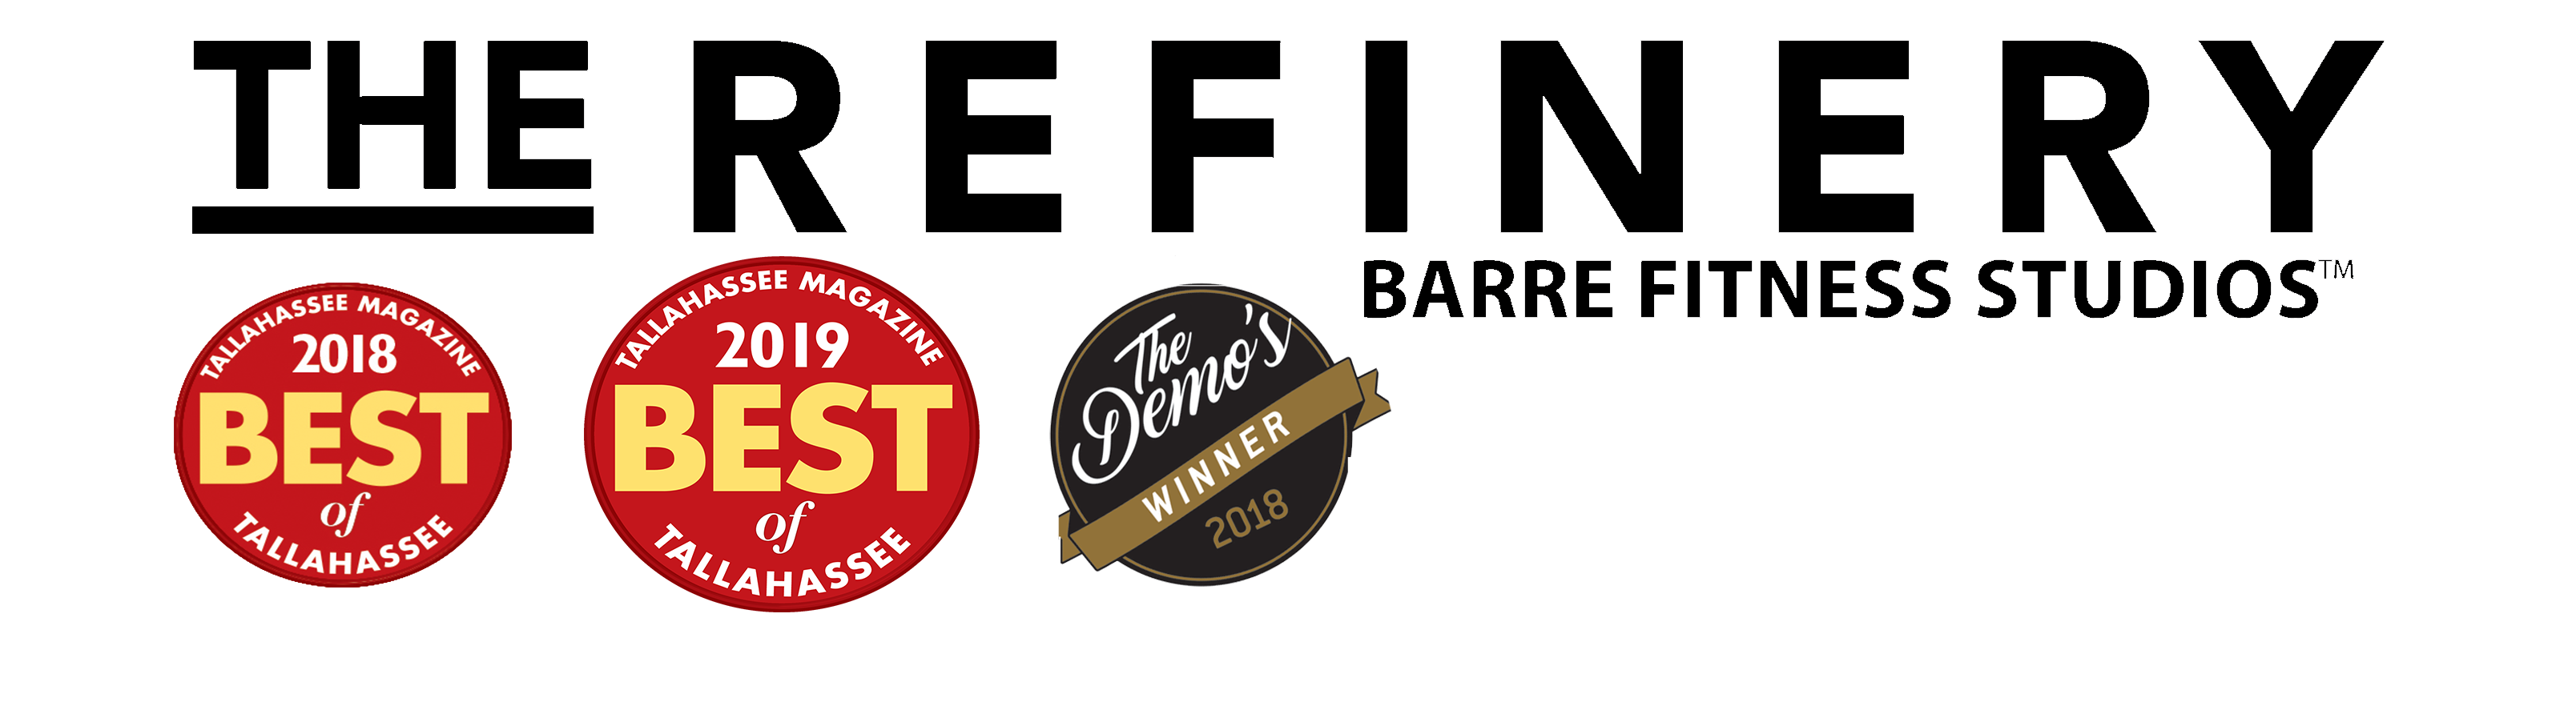 The Refinery Barre Fitness Studios